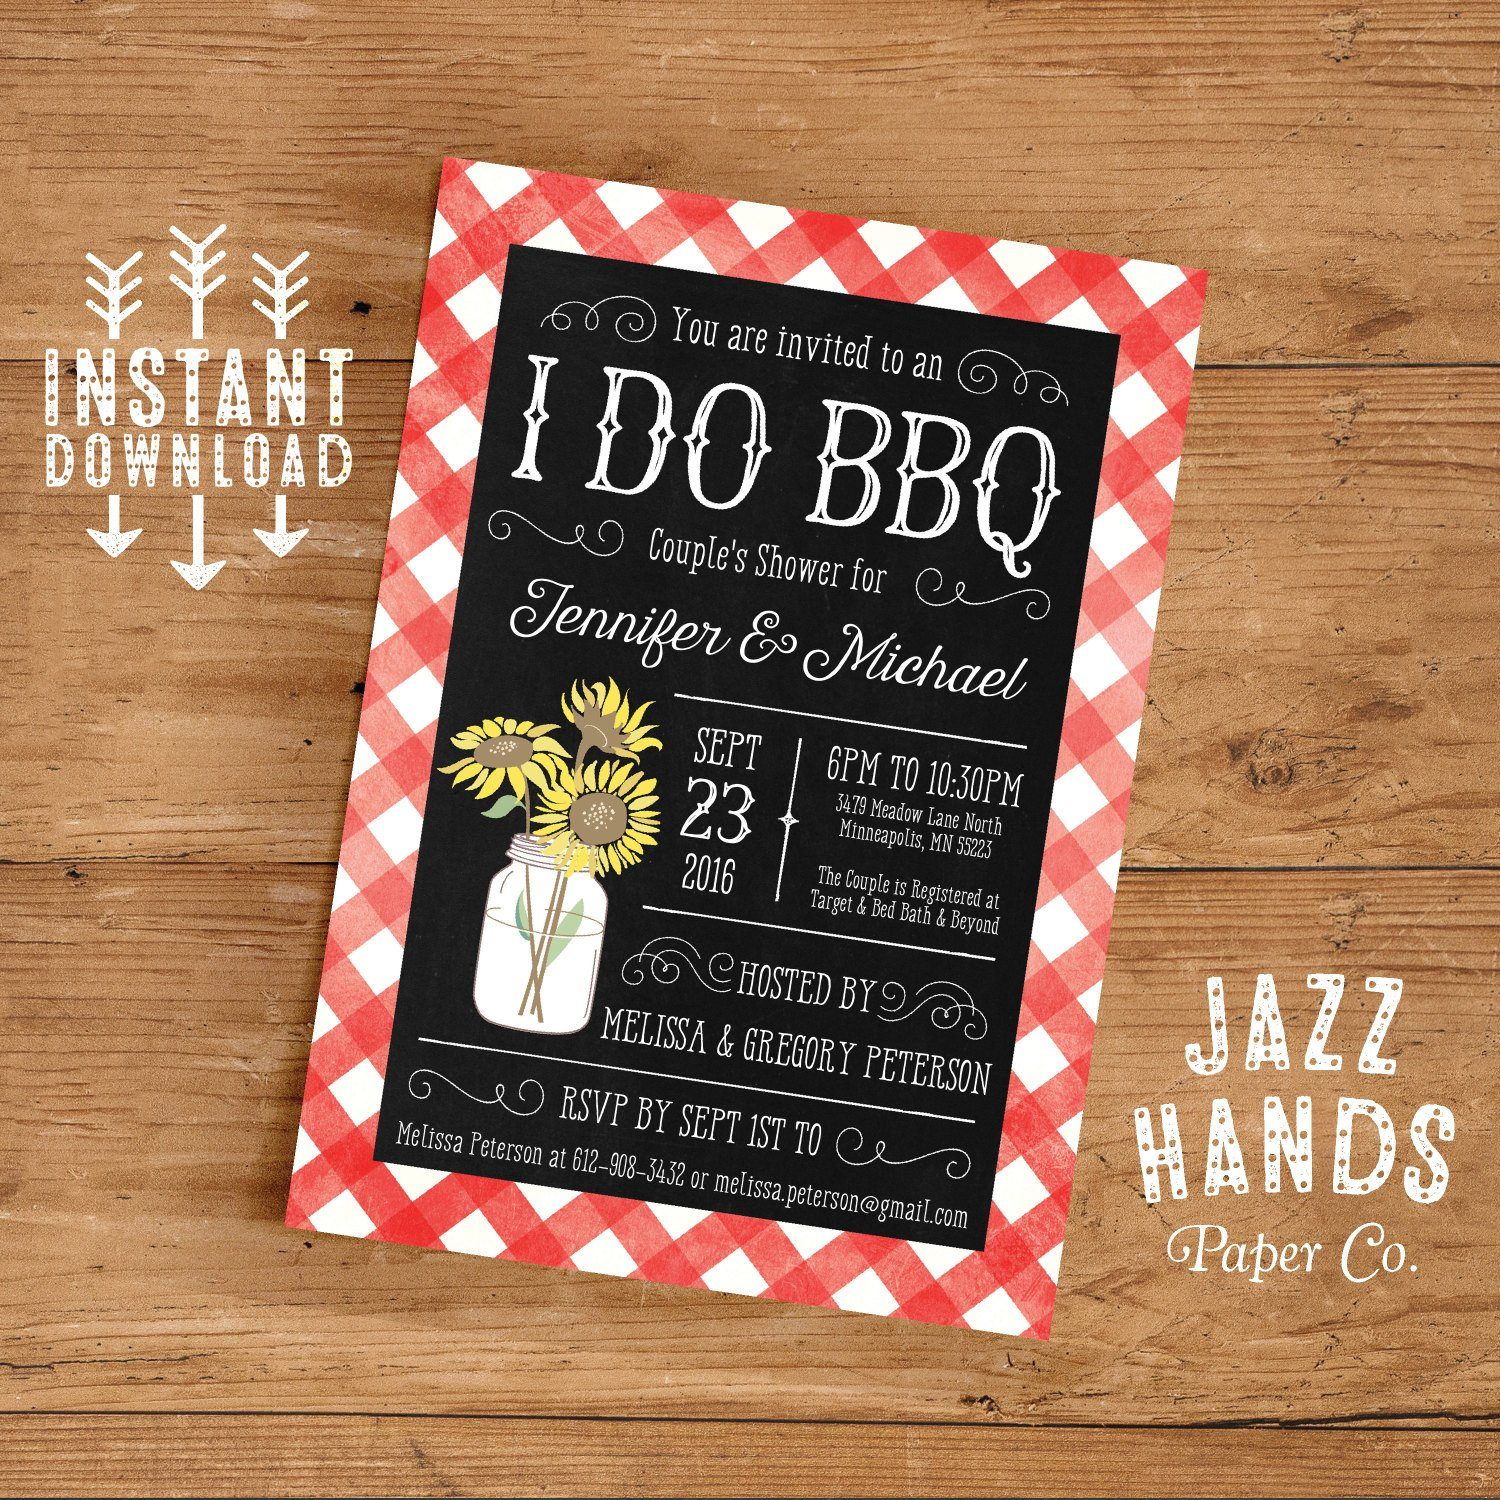 I Do Bbq Invitations Printable I Do Bbq Couples Shower Invitation Template Diy